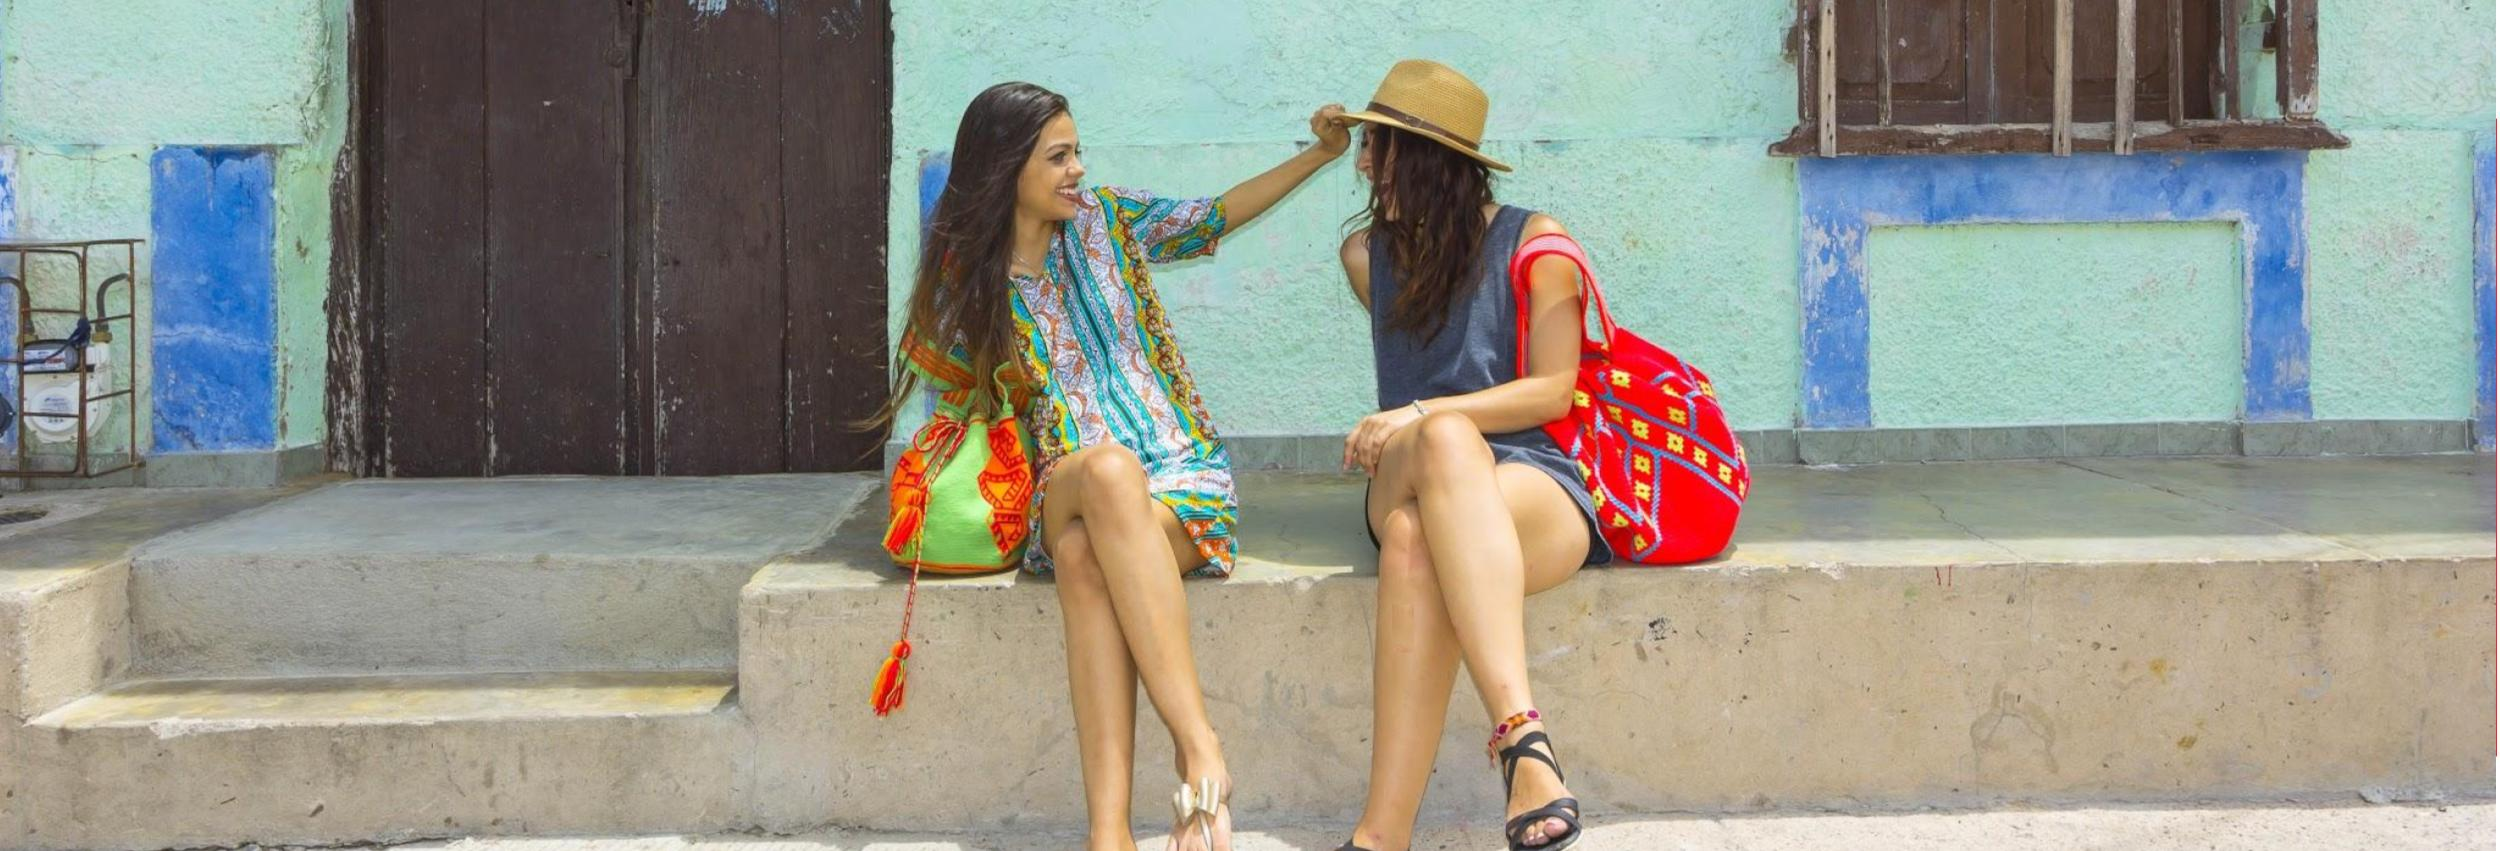 Women sitting on the street with bright colores Wayuu beach bags